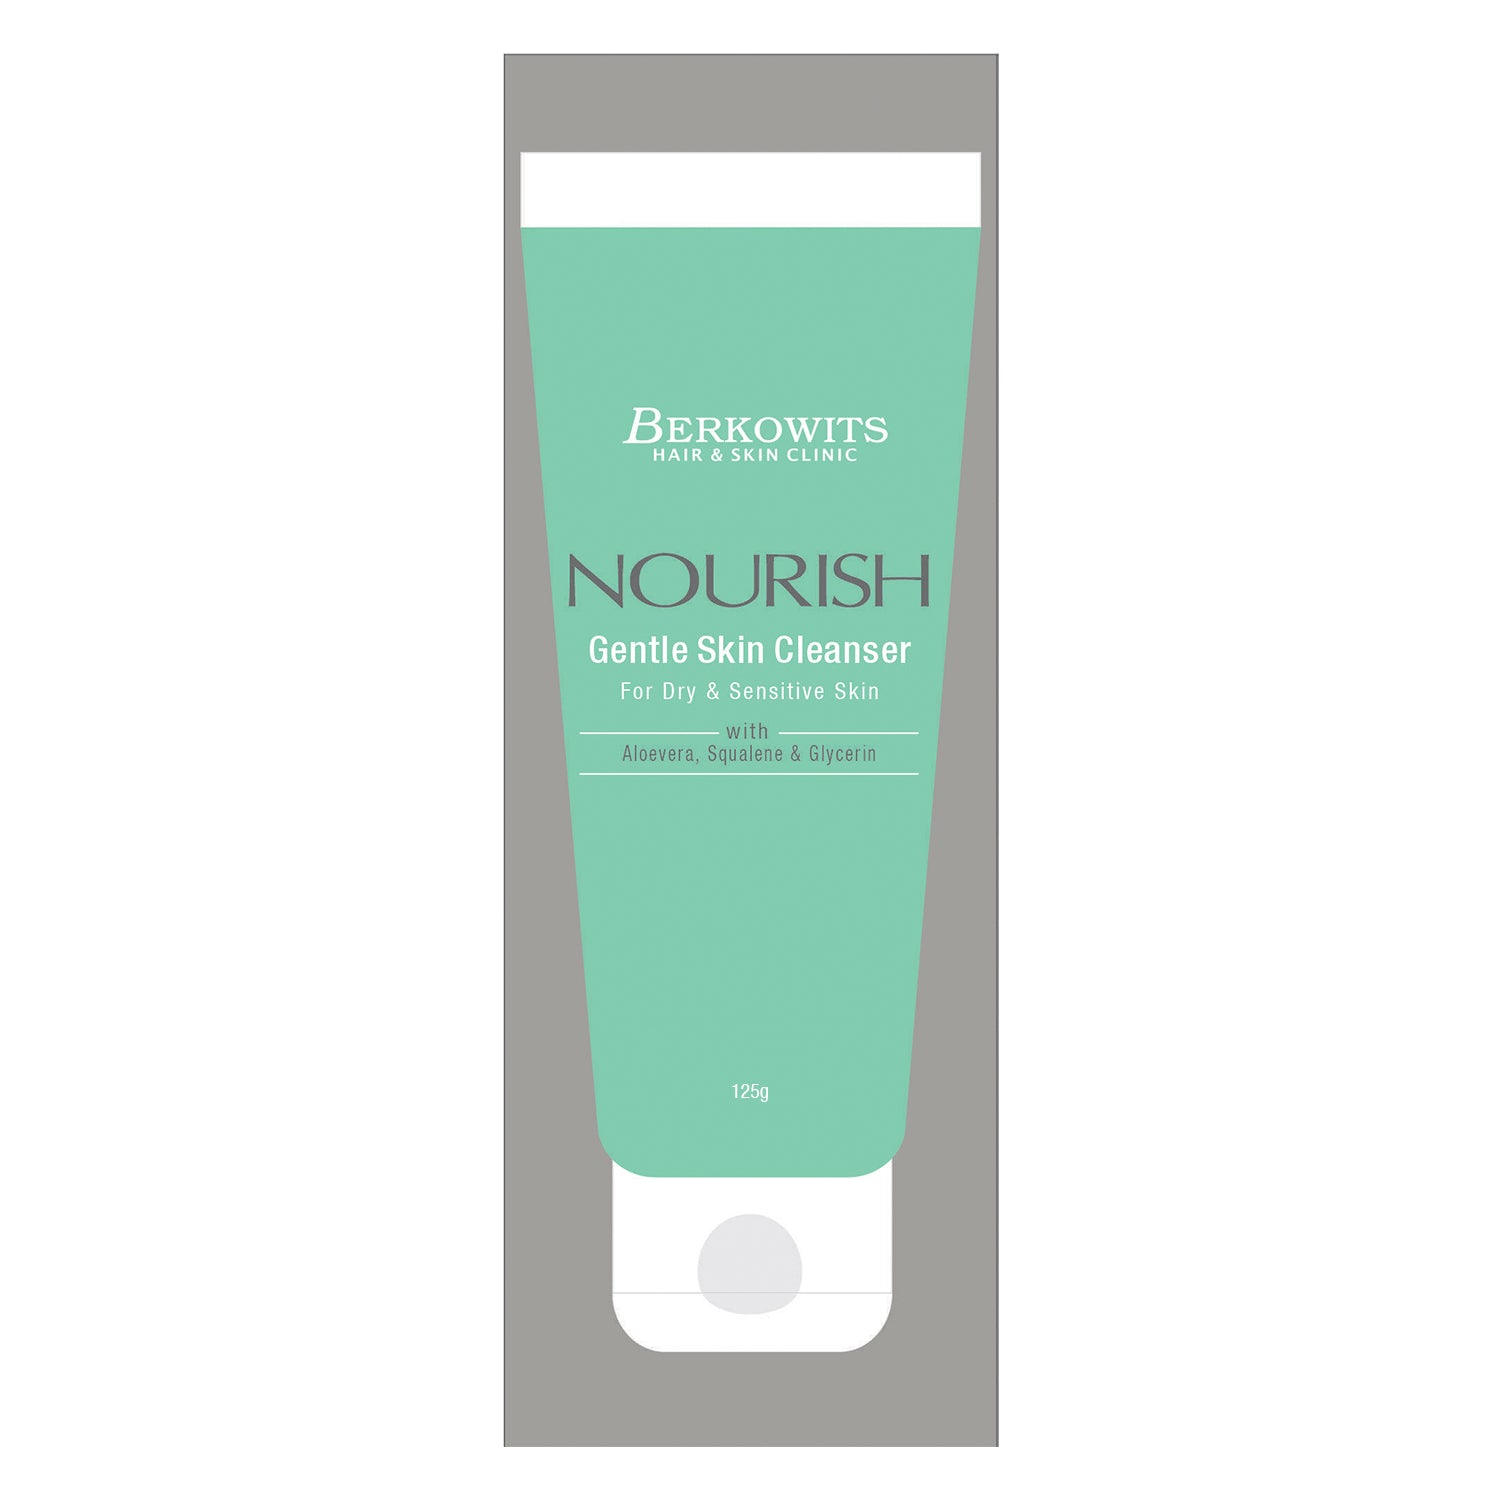 Berkowits Nourish Gentle Skin Cleanser For Dry & Sensitive Skin (125g)